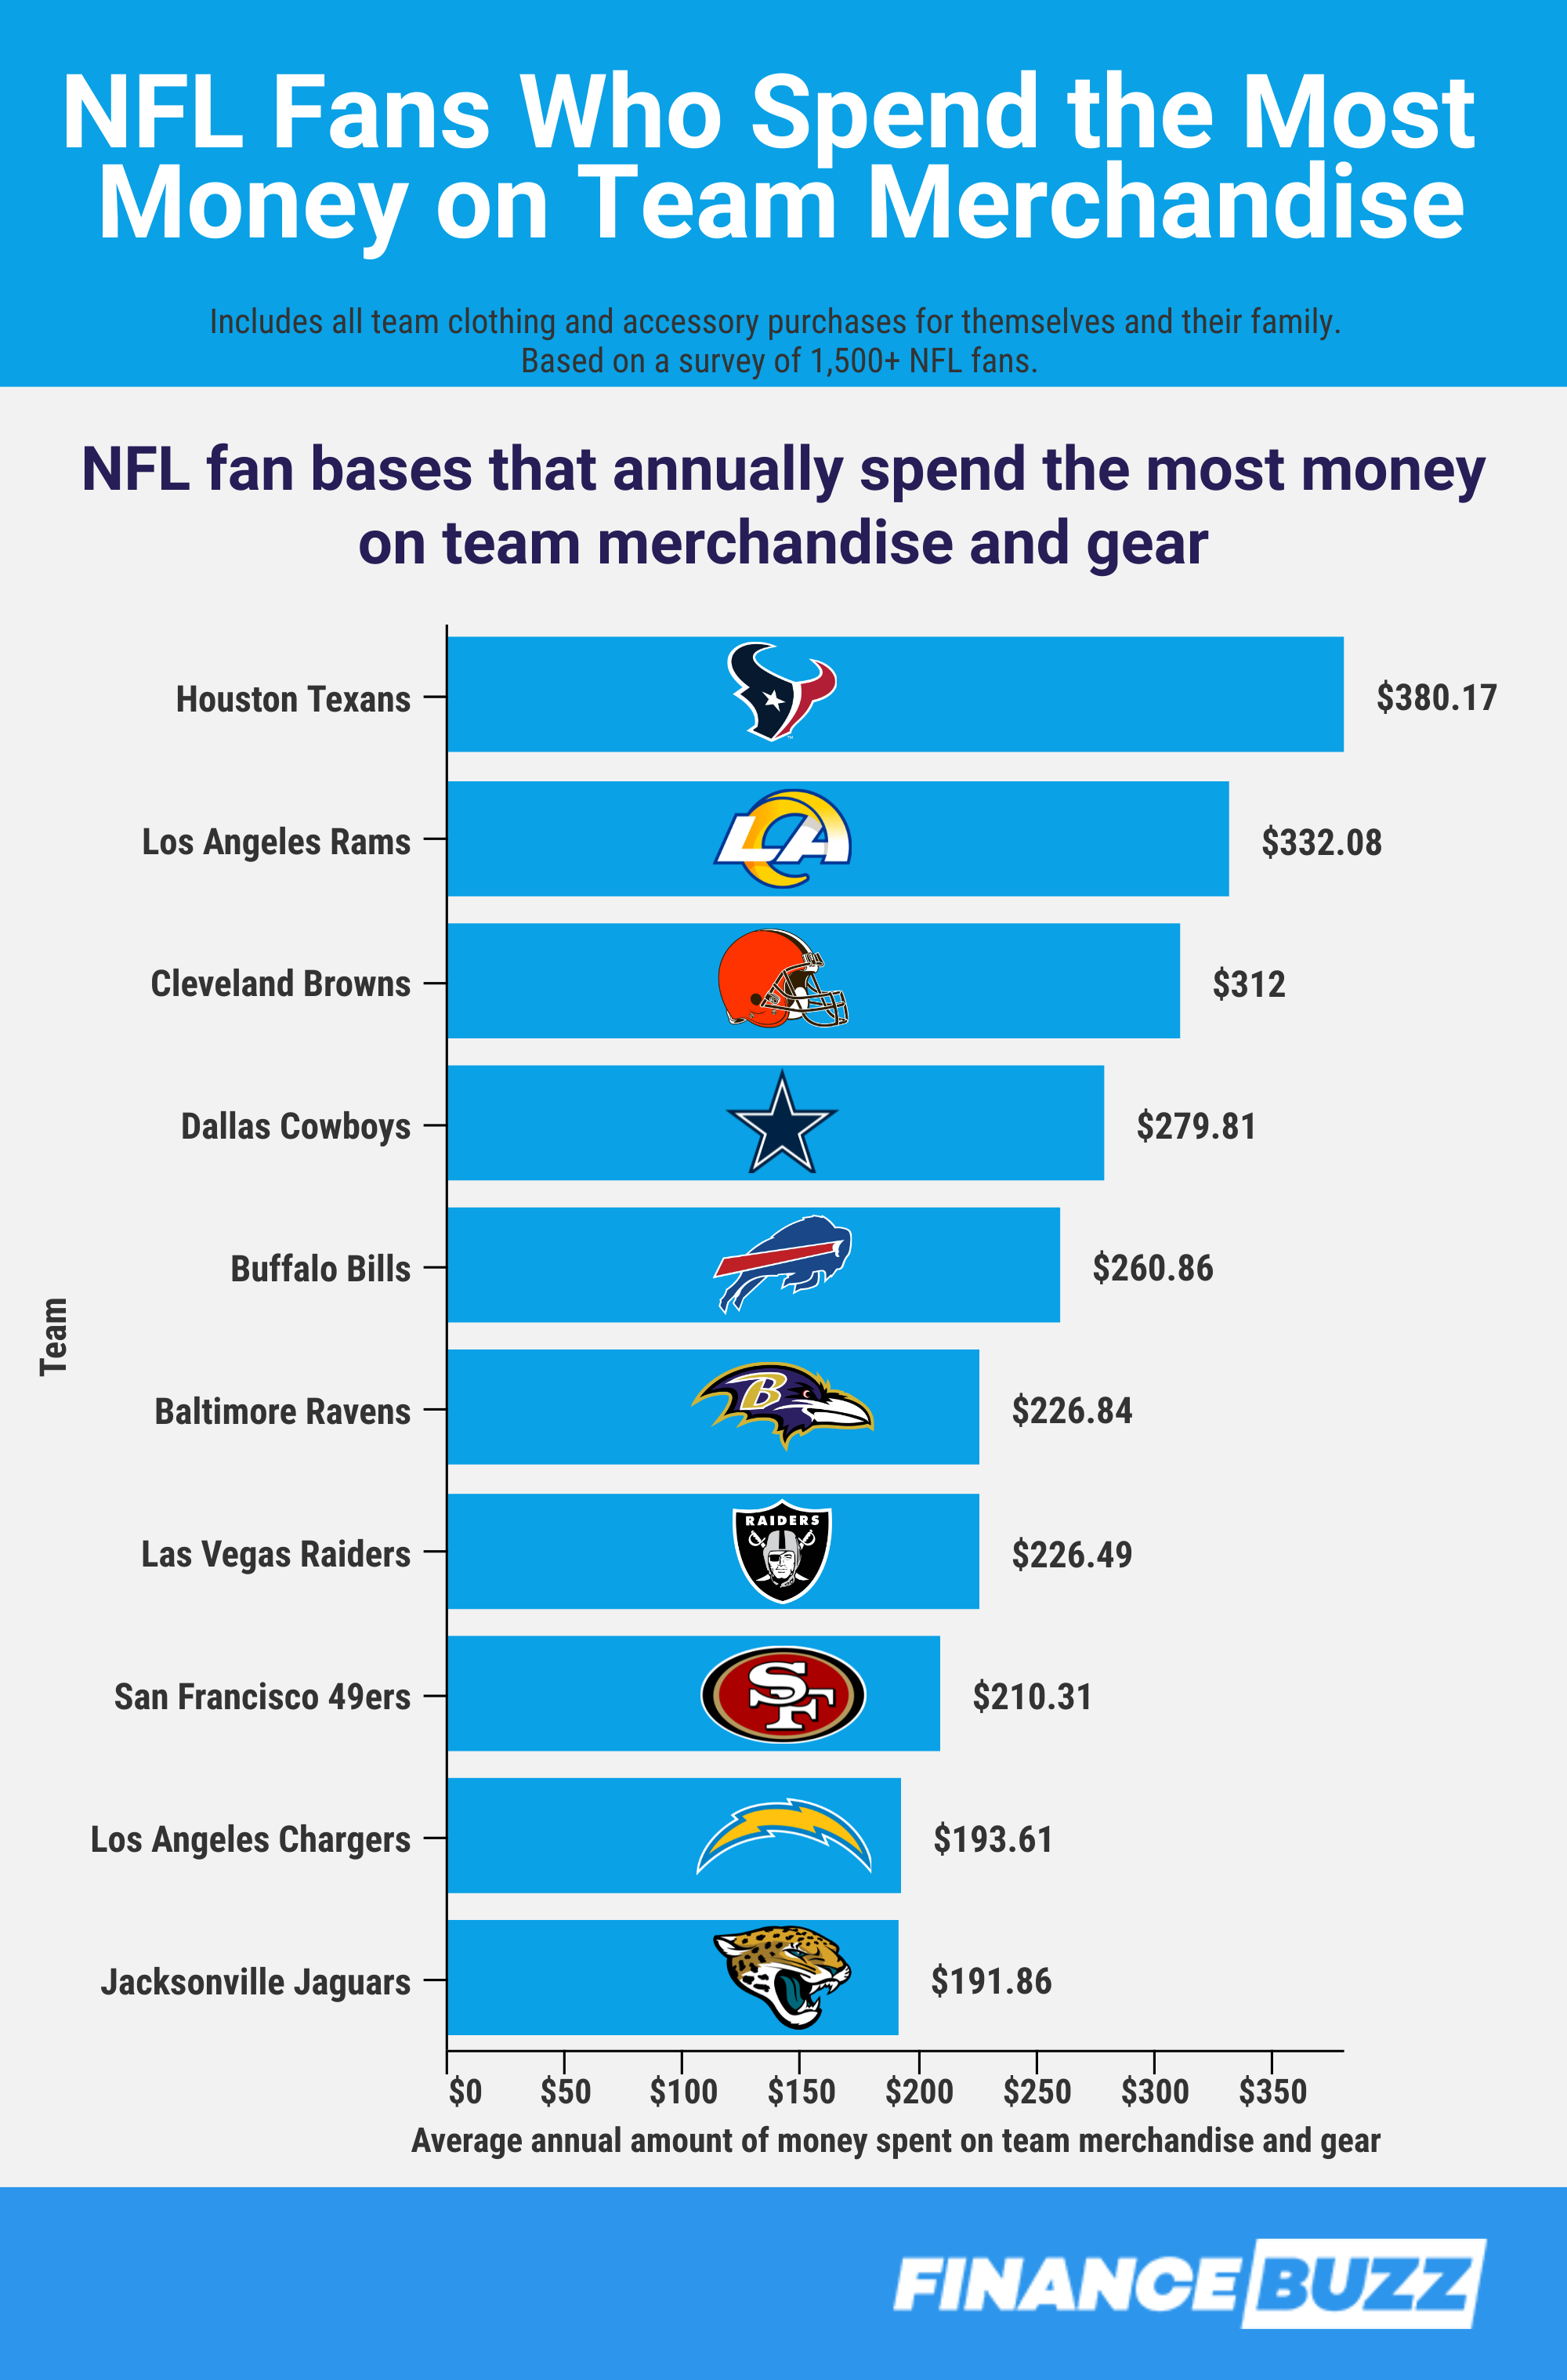 NFL fans that spend the most money on team merchandise